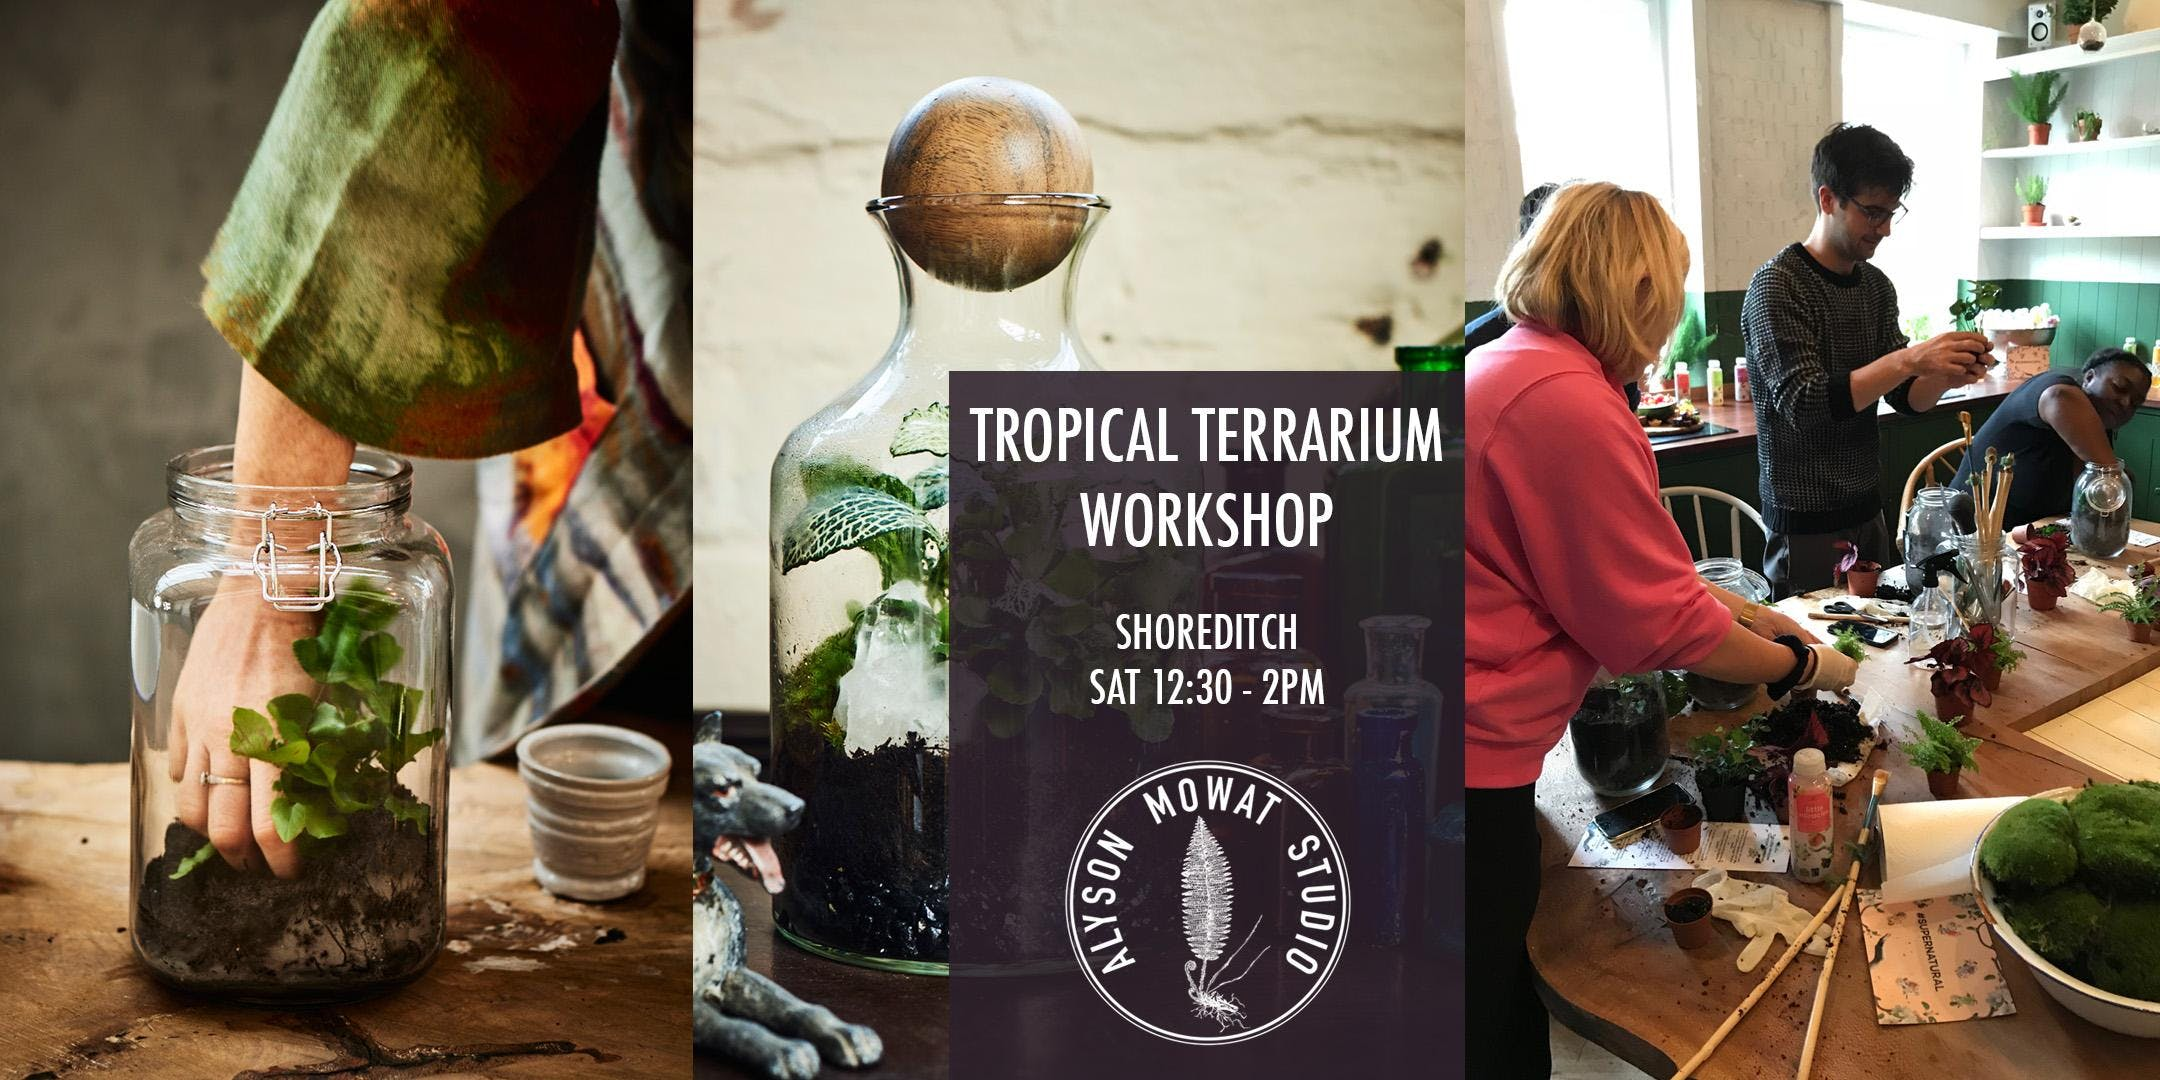 TROPICAL TERRARIUM WITH TOOL MAKING - The steamy one